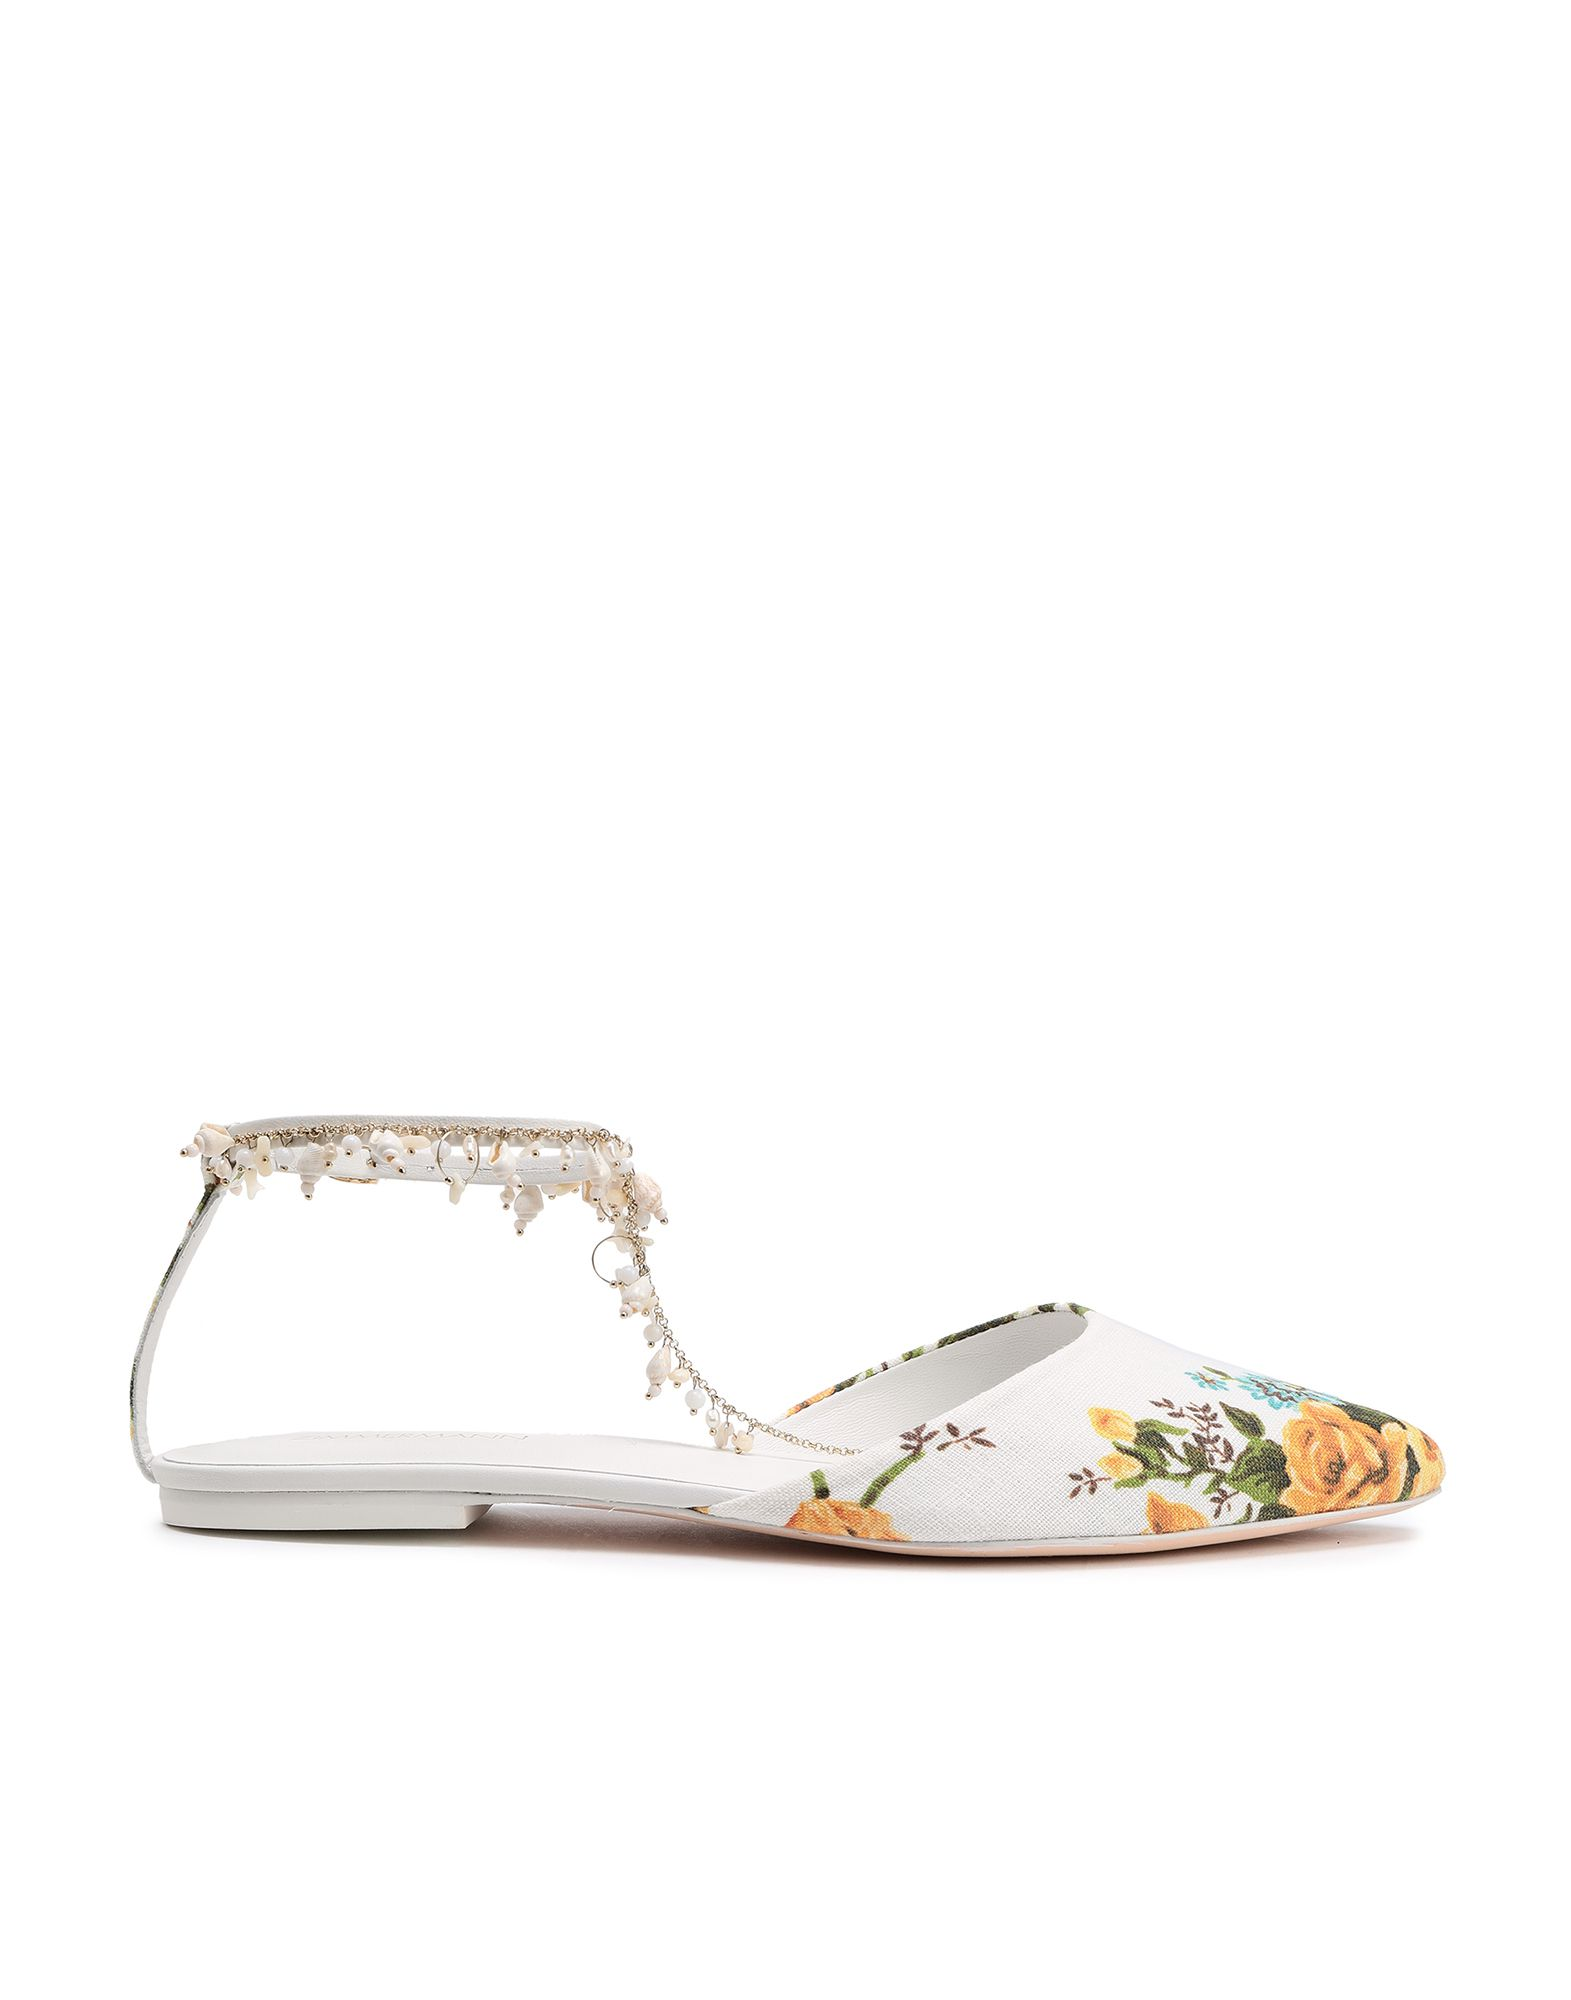 ZIMMERMANN Mules. contrasting applications, floral design, buckling ankle strap closure, narrow toeline, flat, leather lining, leather/rubber sole, contains non-textile parts of animal origin. Textile fibers, Soft Leather